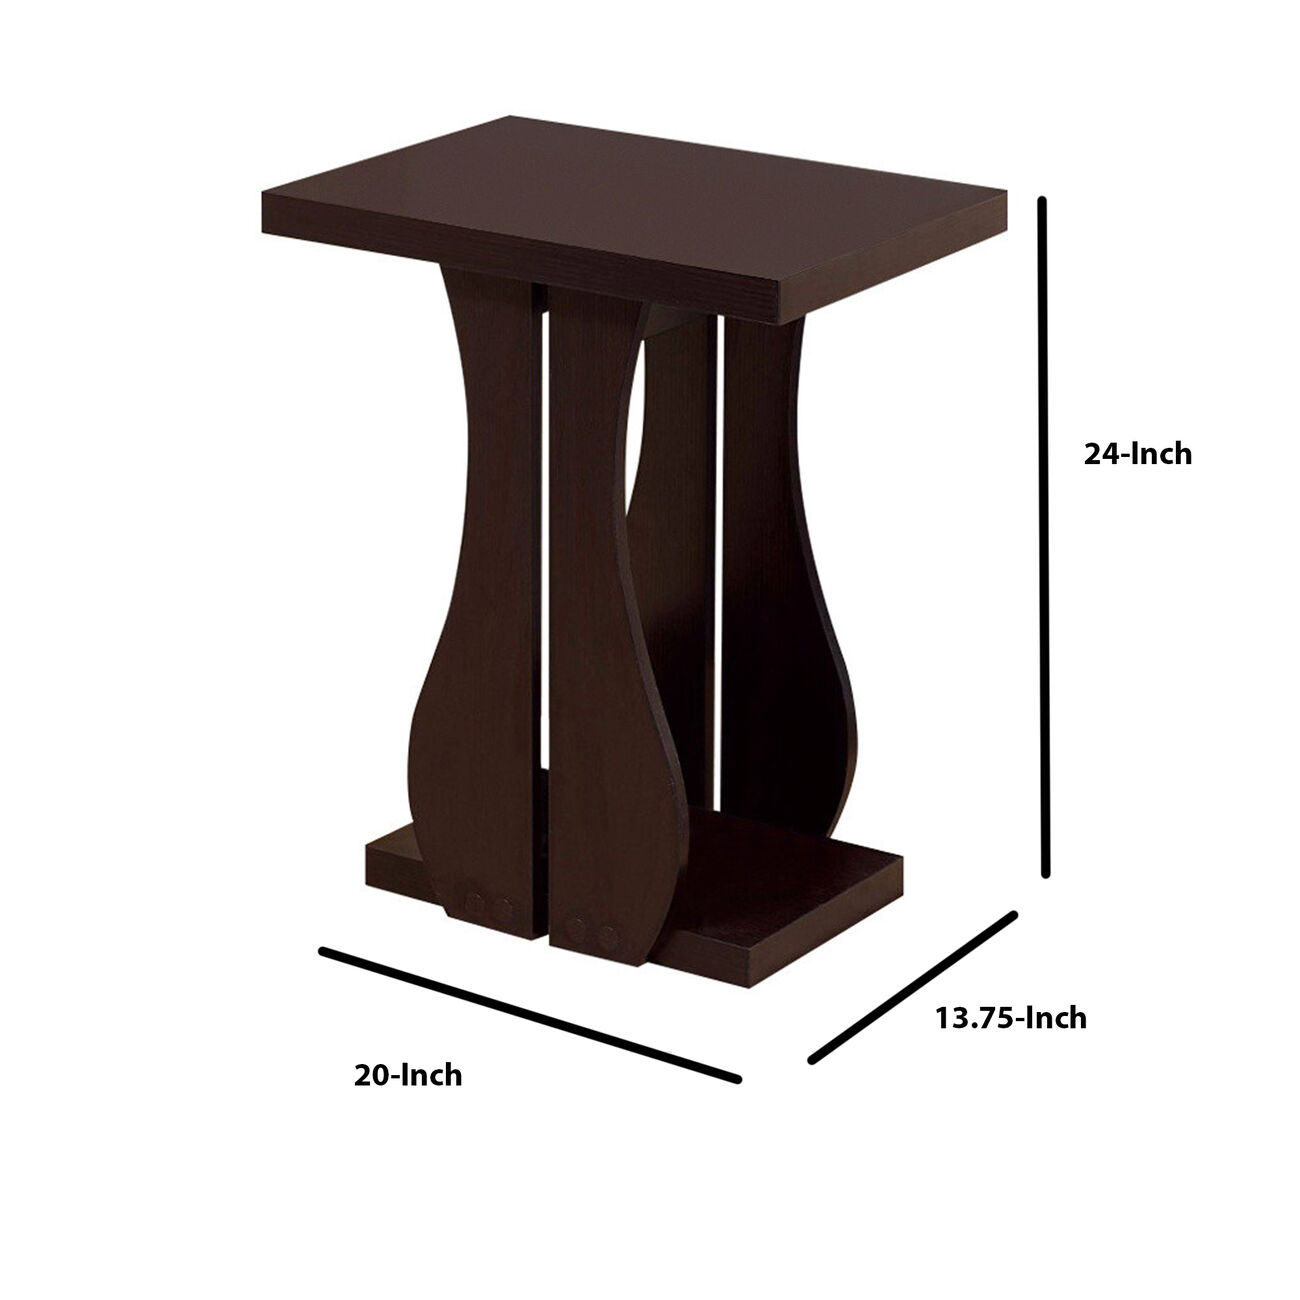 Sophisticated Contemporary Style Chairside Table, Brown Cocoa`